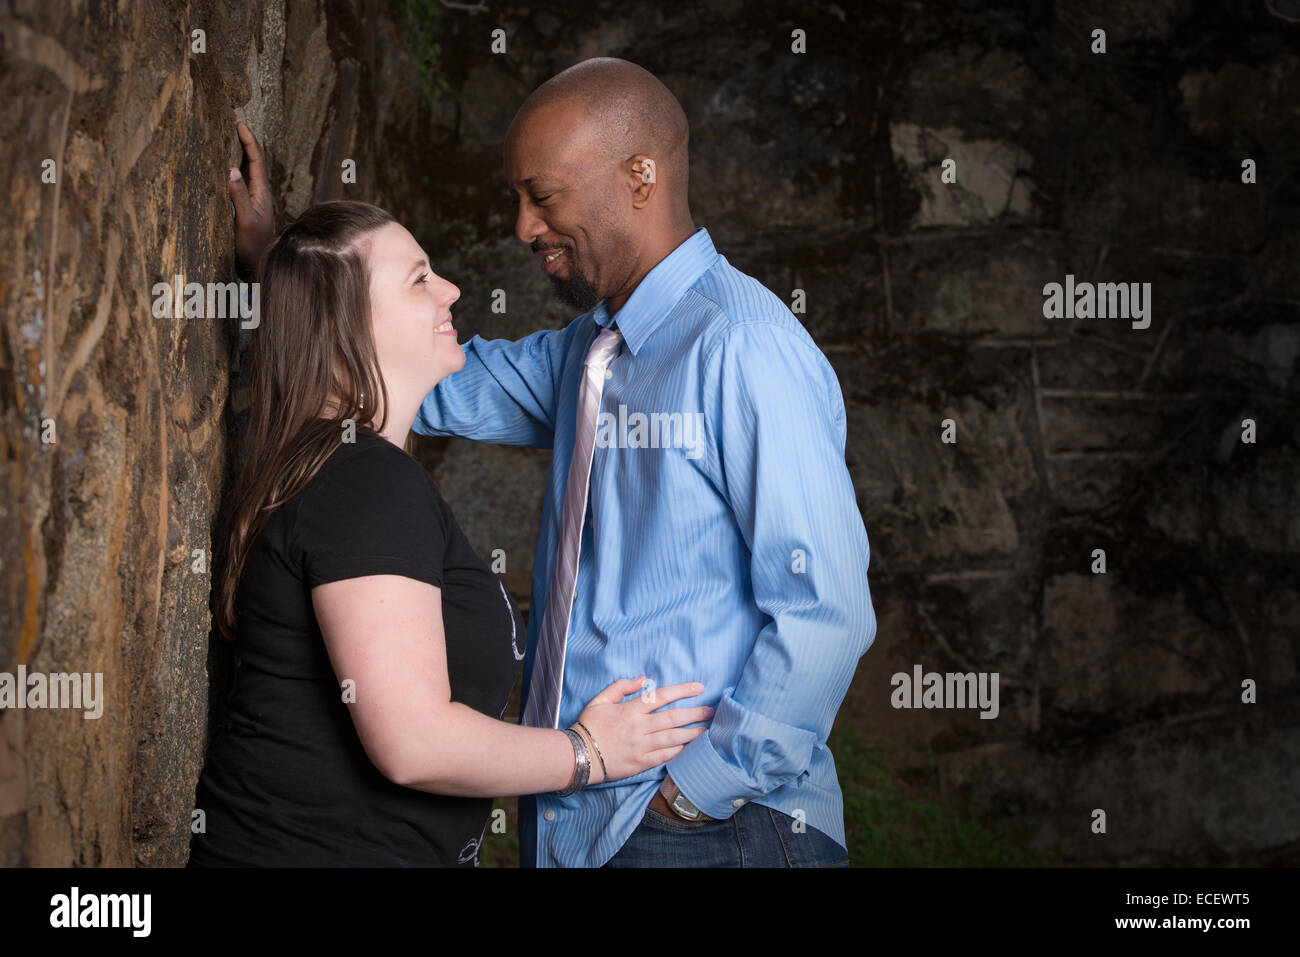 A portrait of an interracial couple looking in each others eyes while smiling. - Stock Image